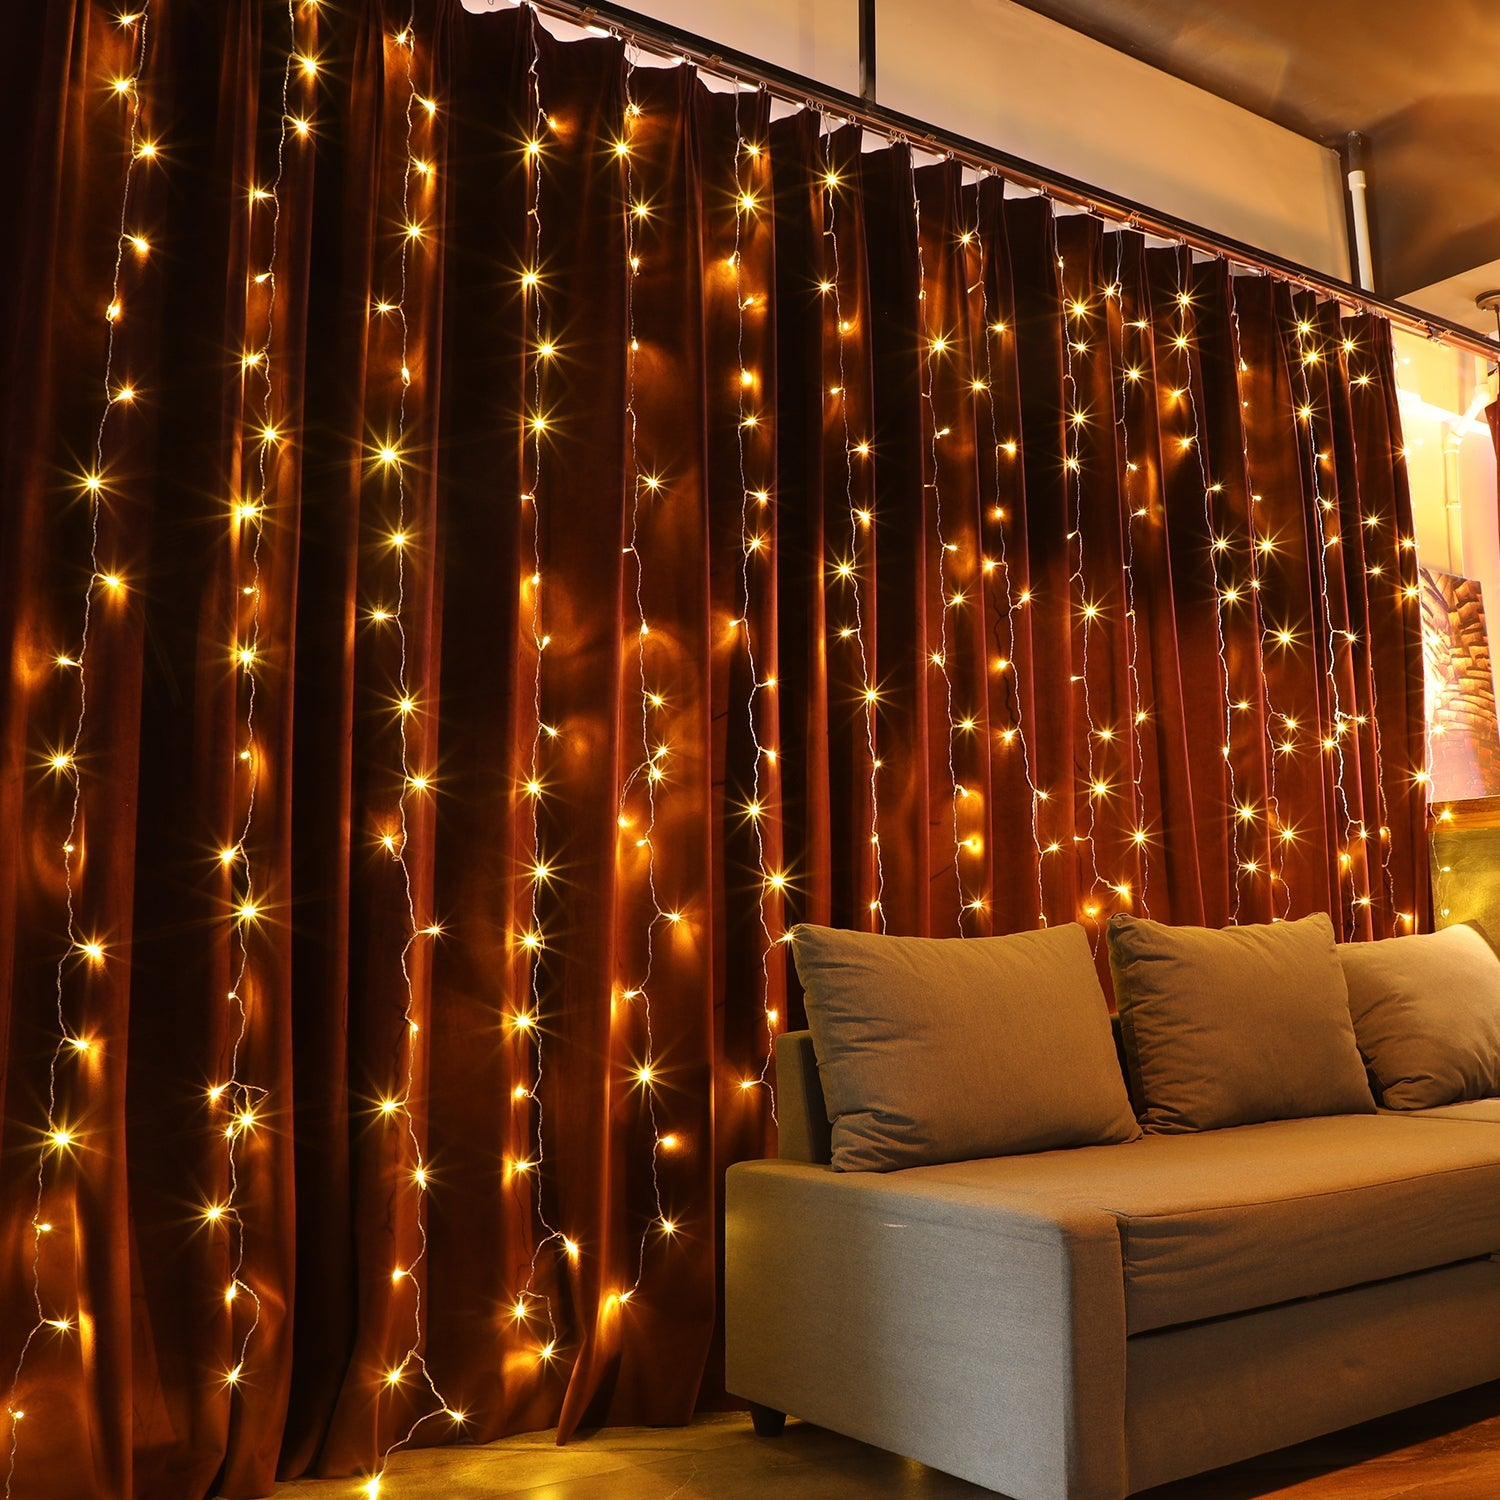 29 LEDs Christmas Window Curtain String Lights, 29 Modes, Warm White/Pure  White